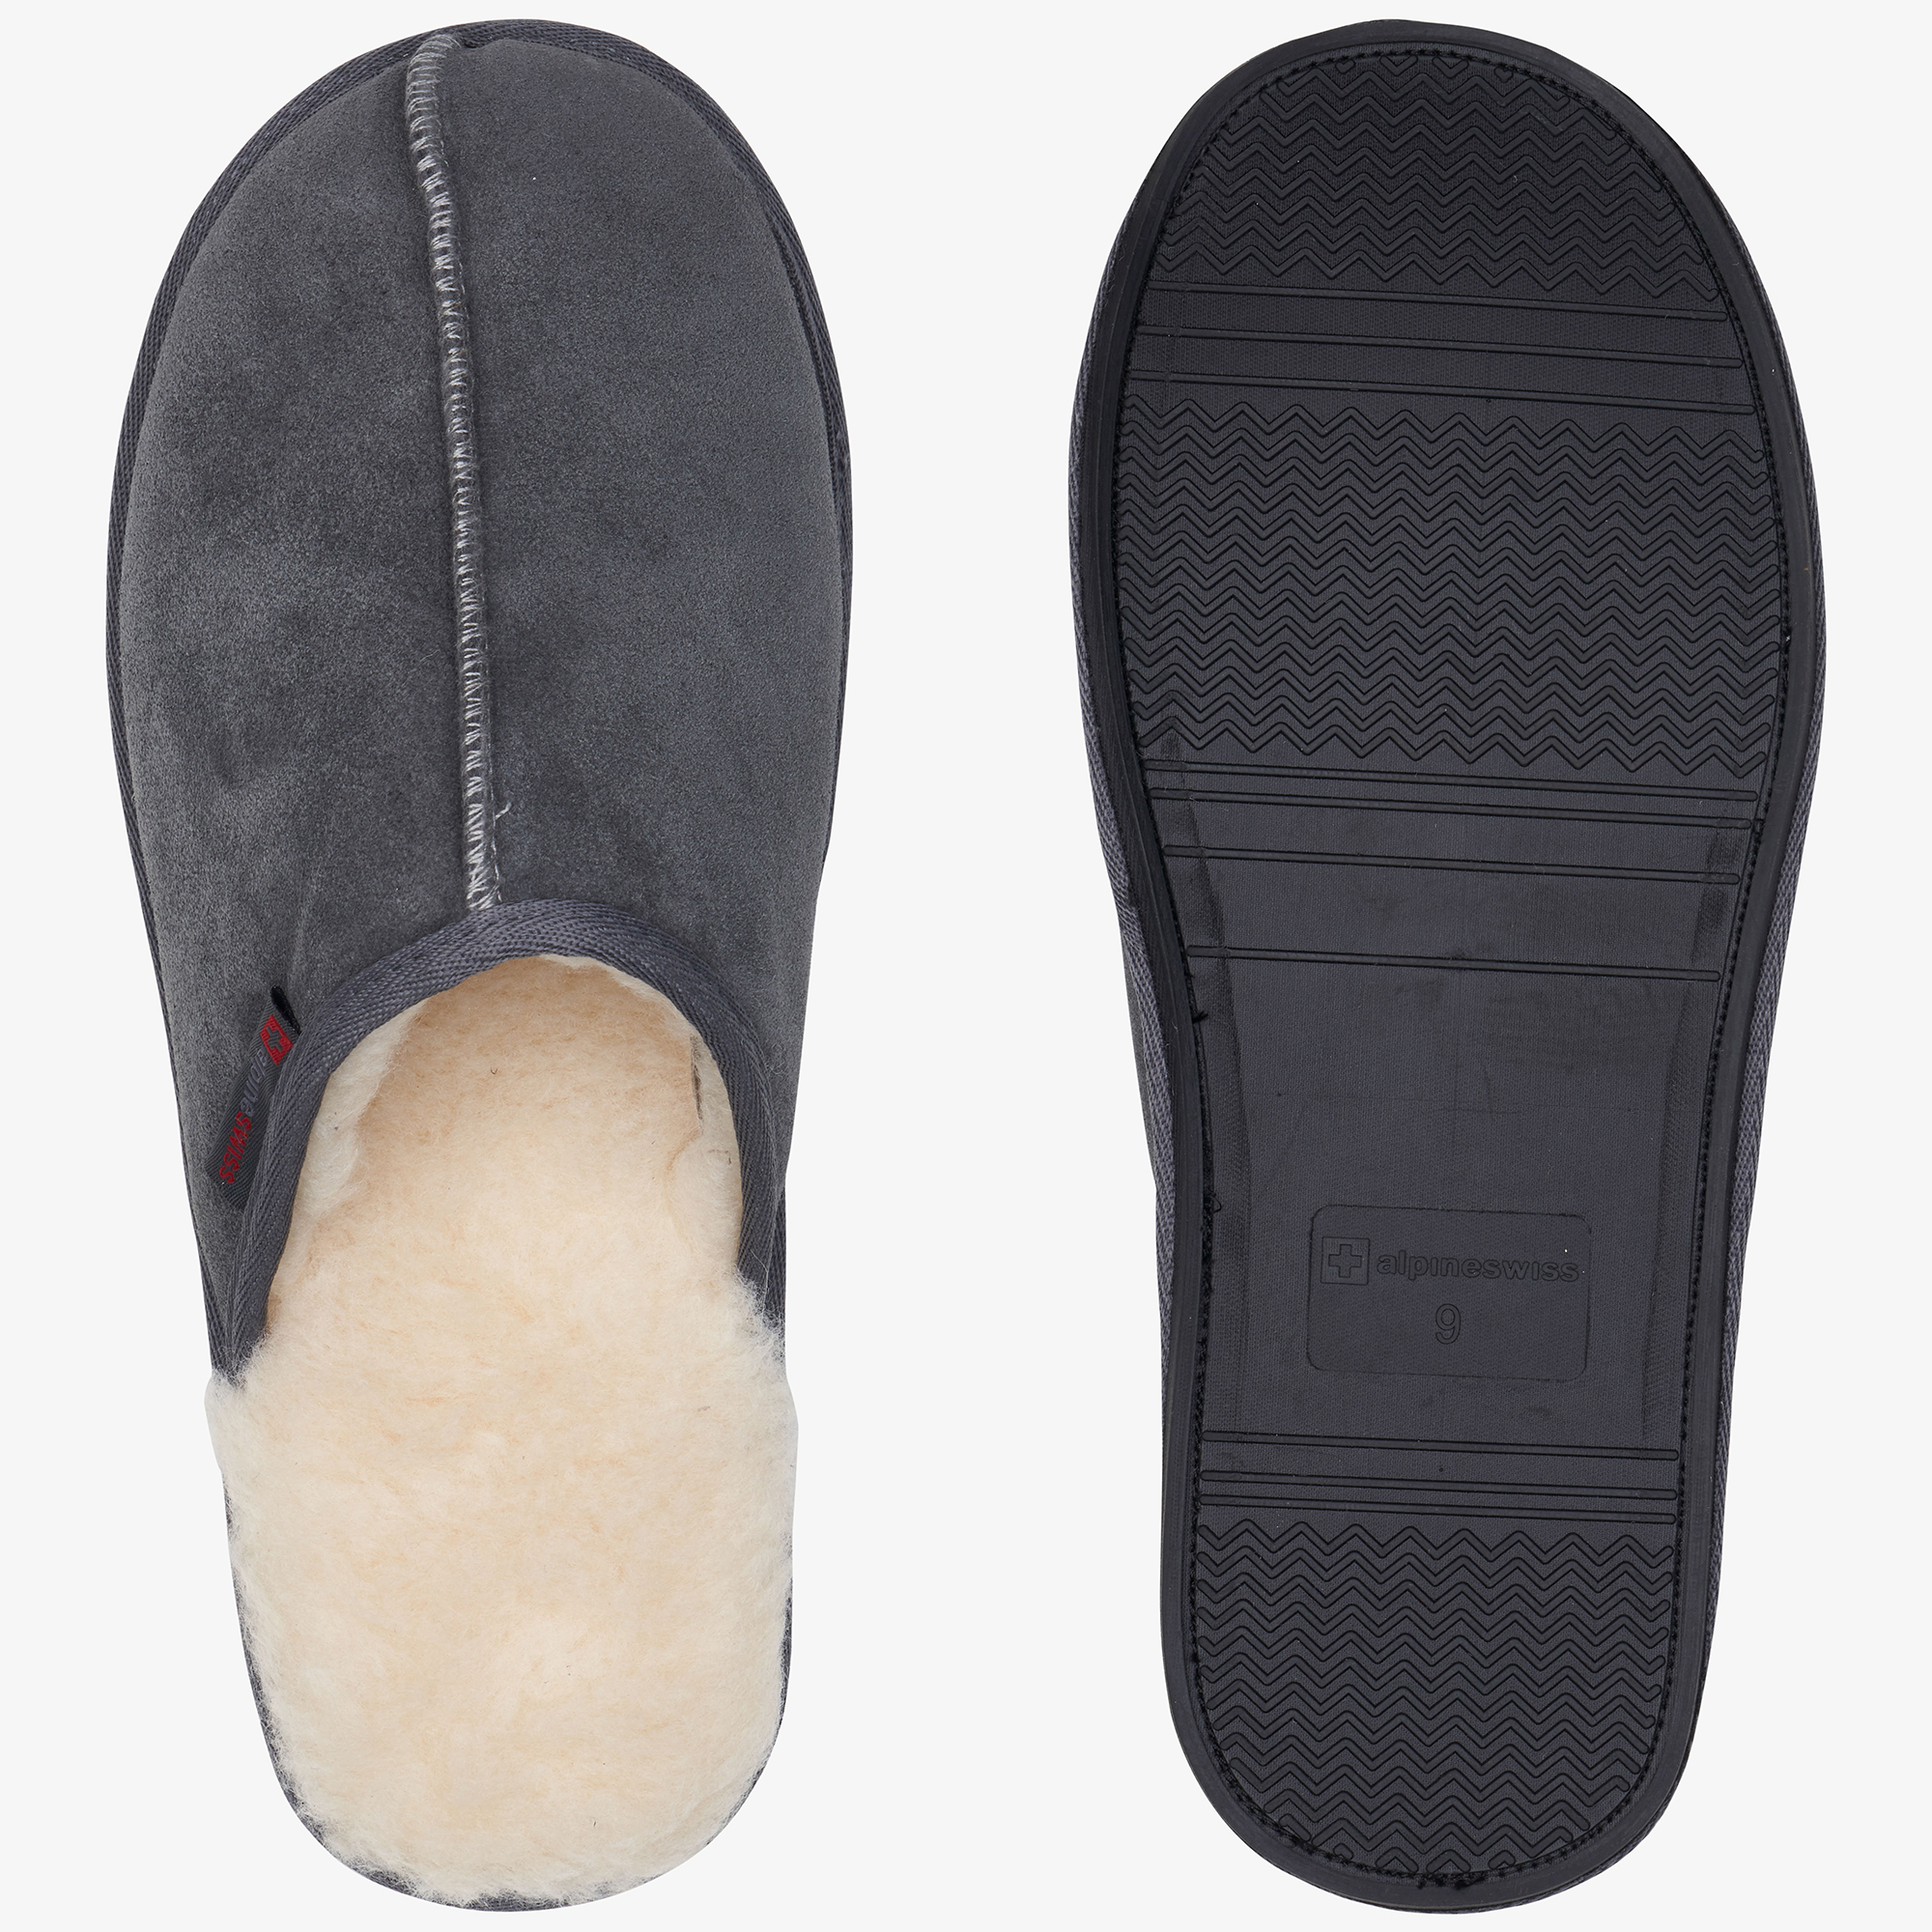 Alpine-Swiss-Mens-Suede-Memory-Foam-Scuff-Slippers-Comfort-Slip-On-House-Shoes thumbnail 27